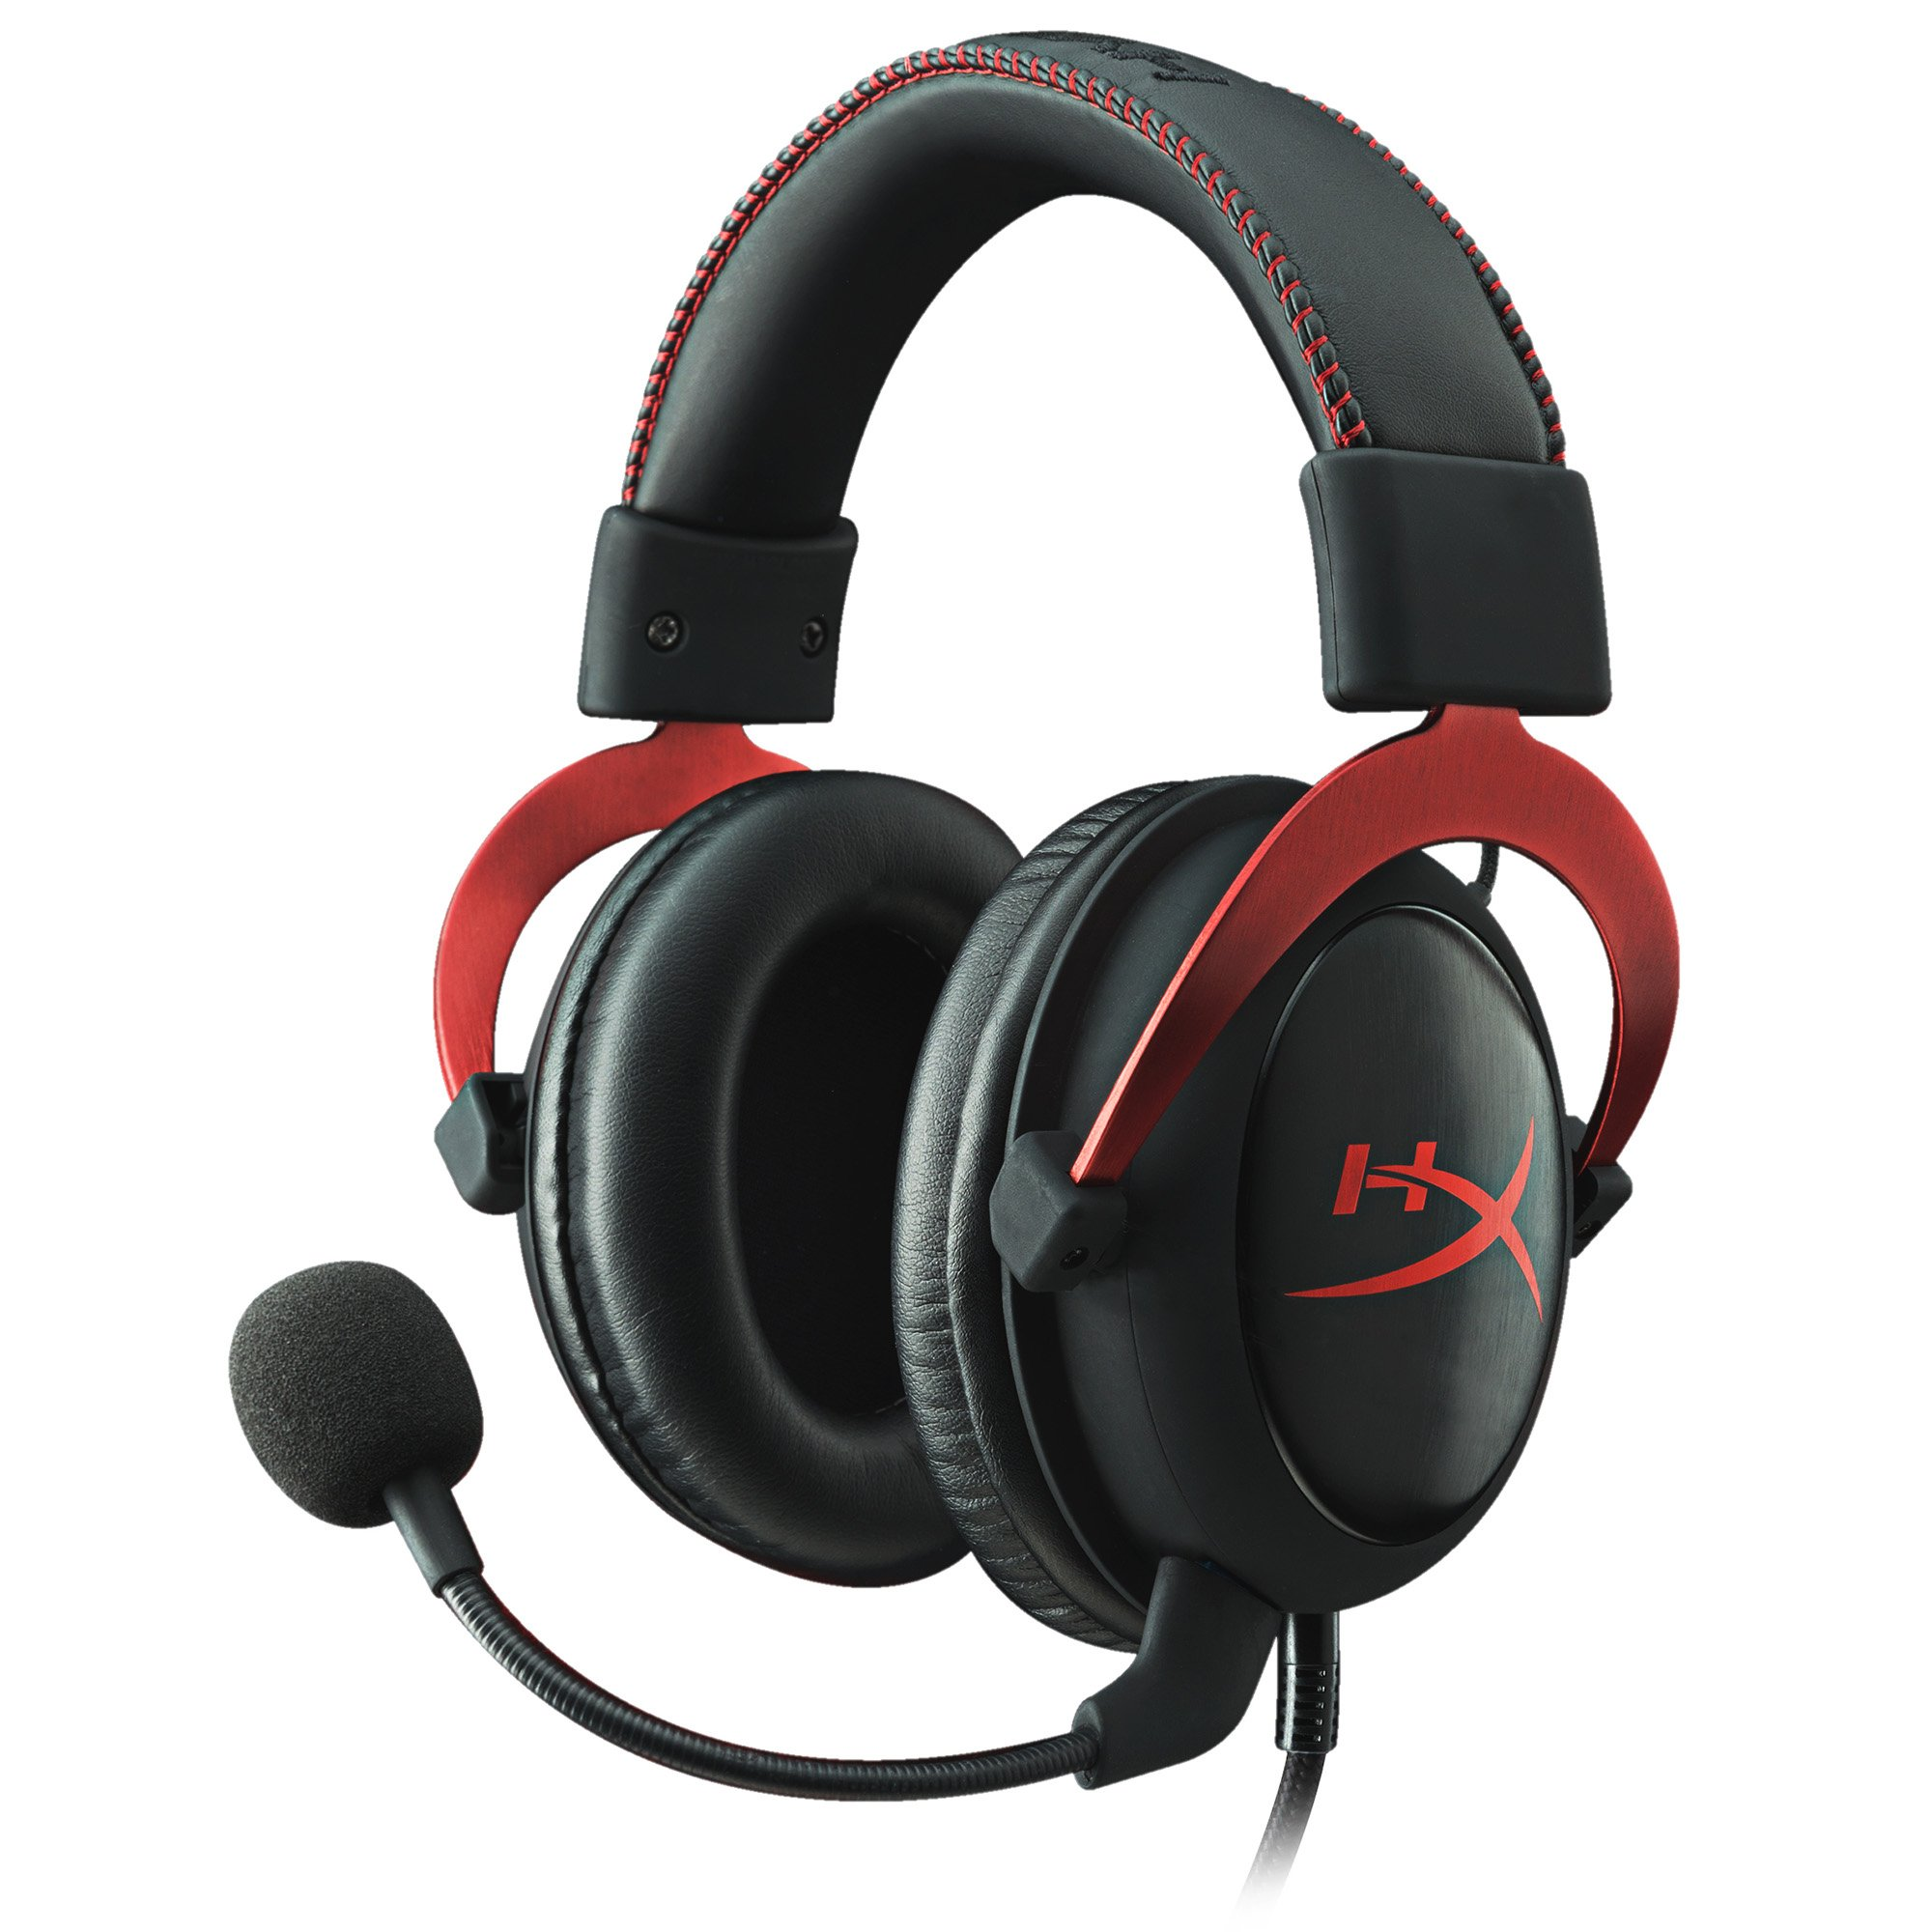 HyperX-Cloud-II-Casque-Gaming-avec-Micro-pour-PCPS4MacMobile-Rouge